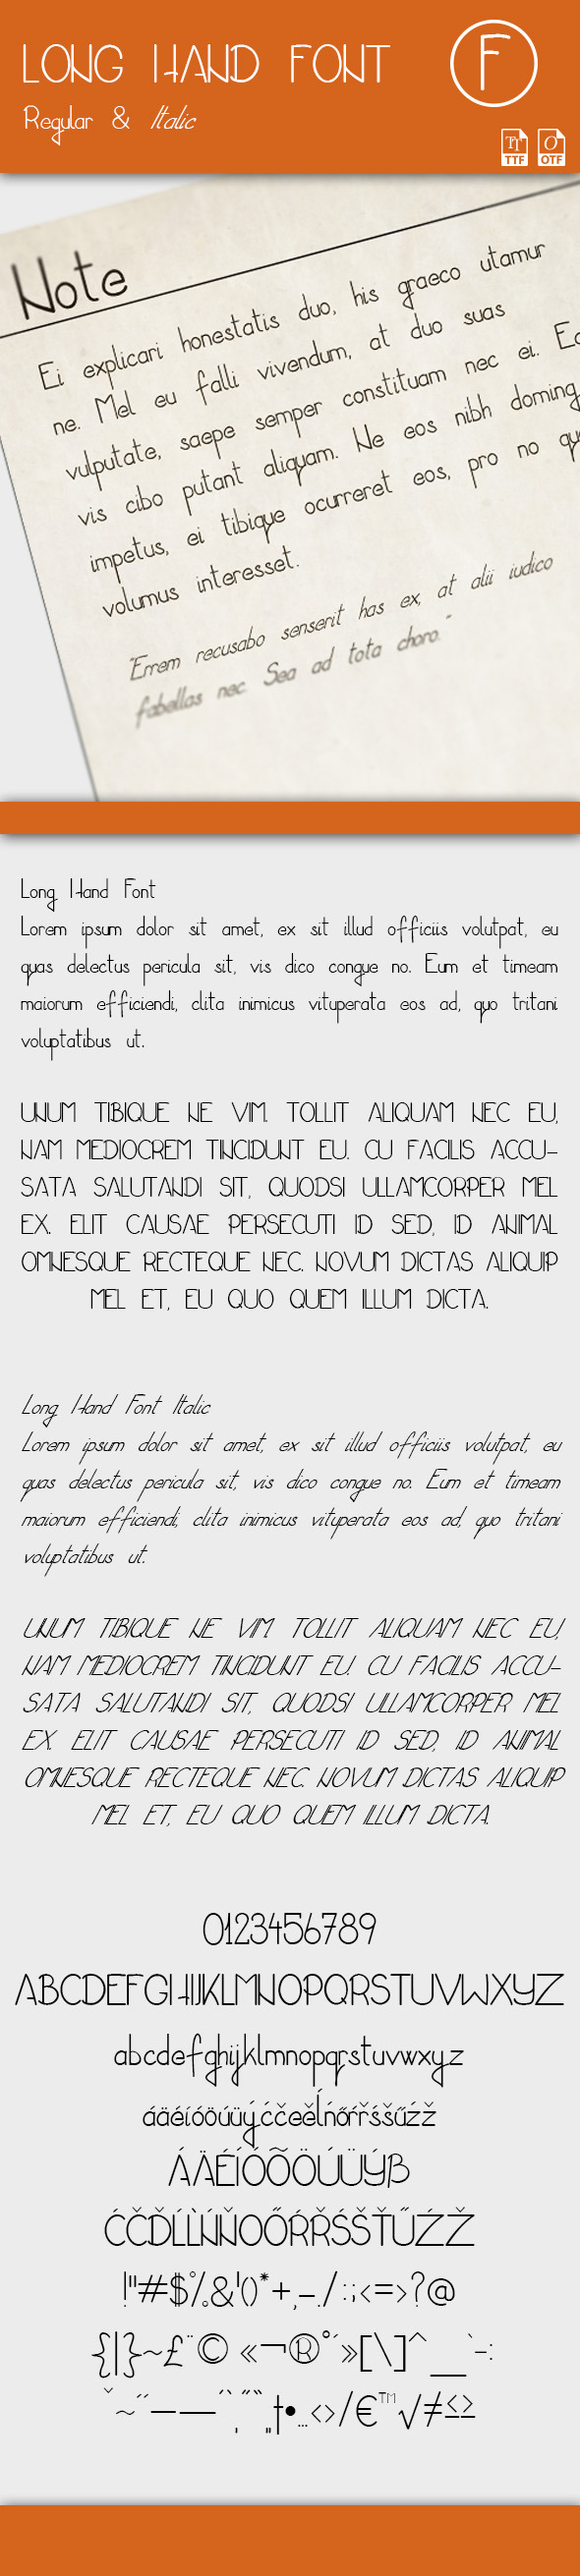 Long Hand Font - Handwriting Fonts